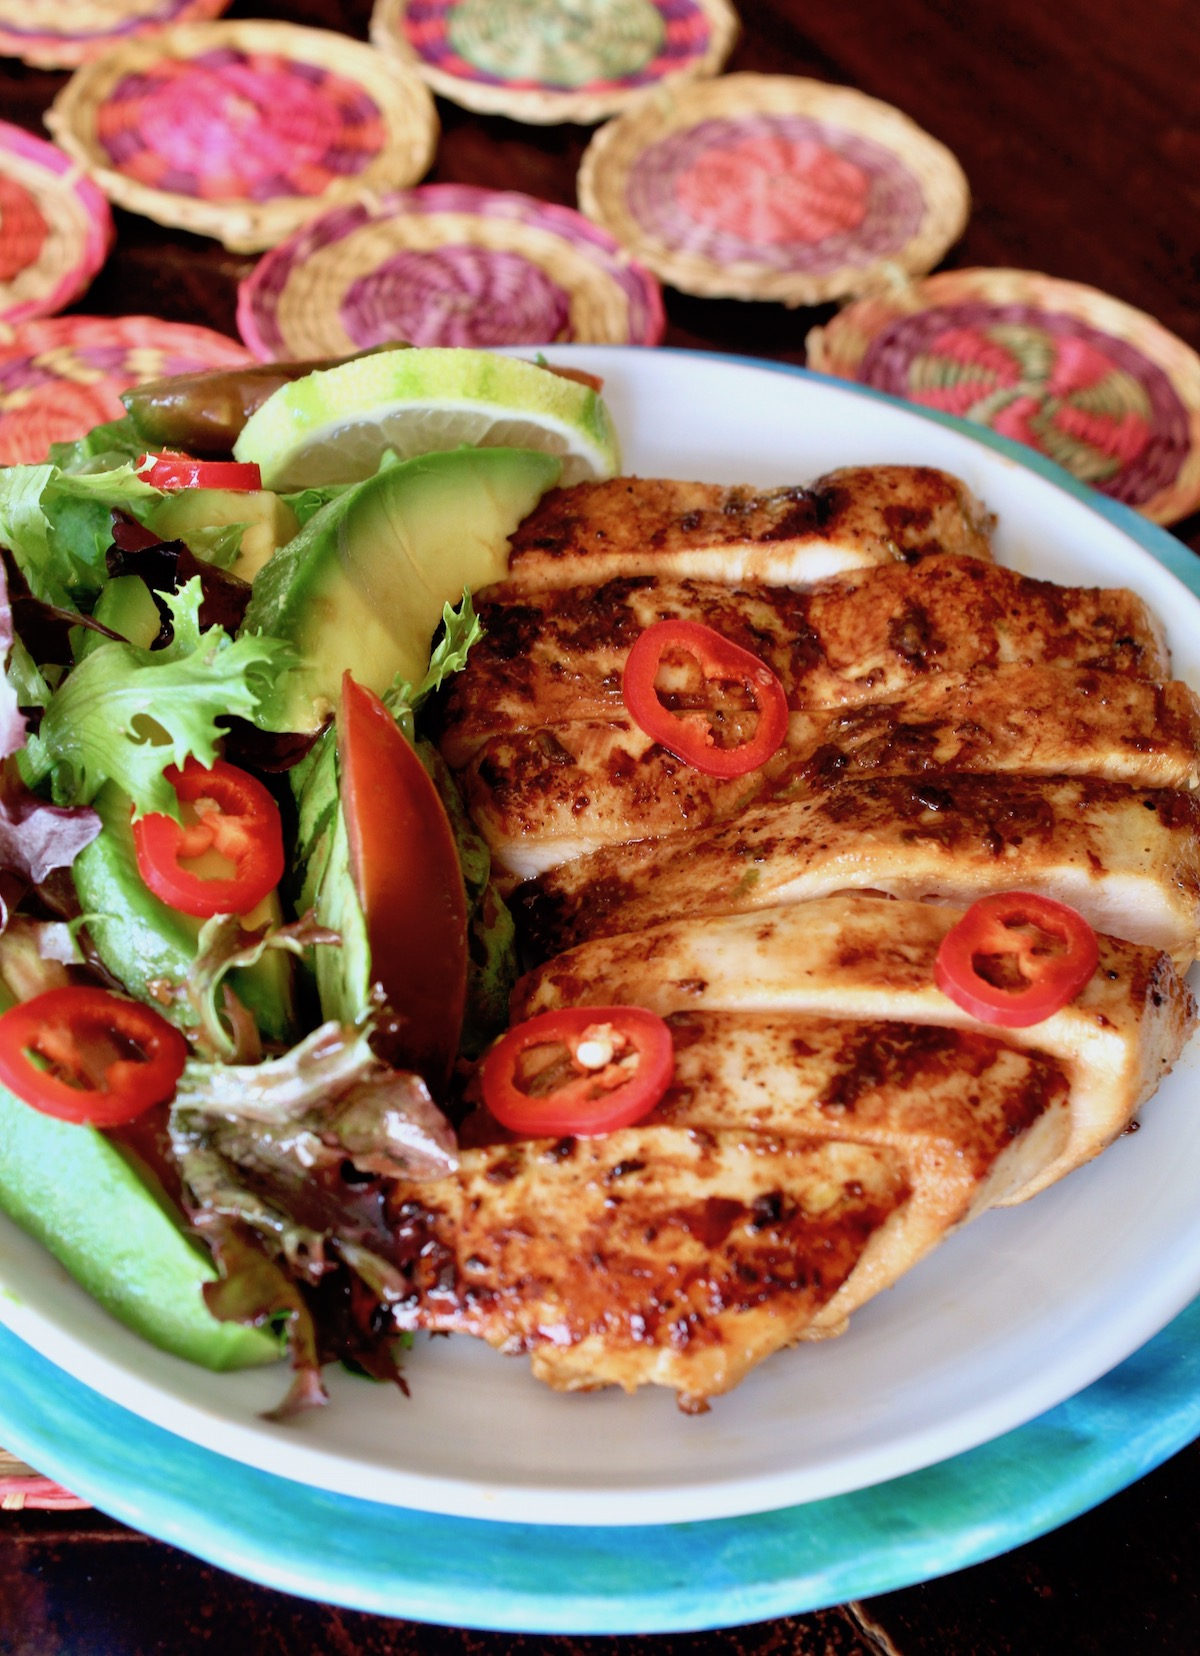 sliced tequila lime chicken on white plate with a side salad